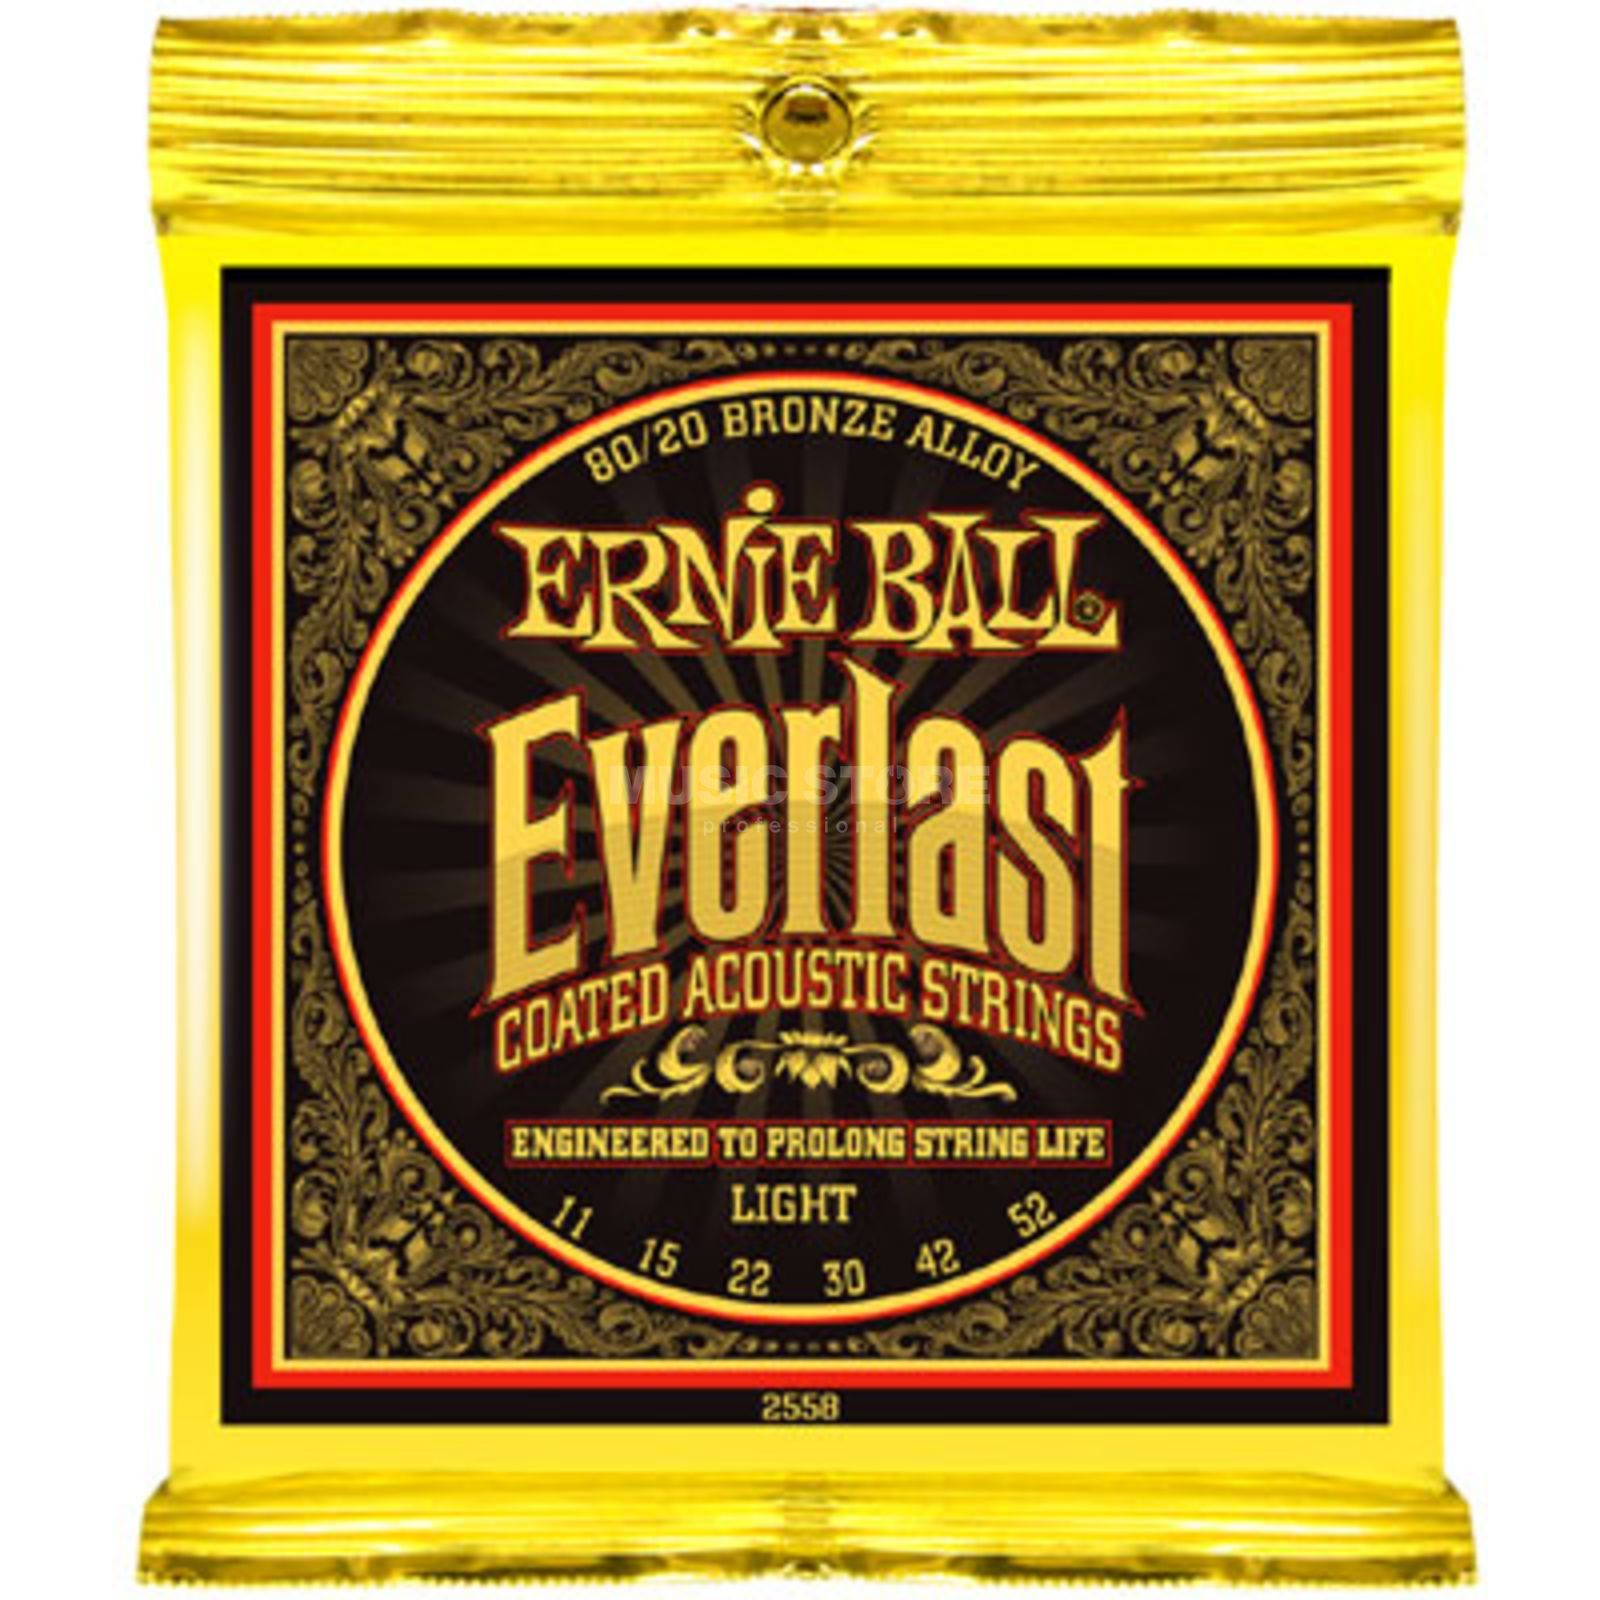 Ernie Ball A-Guit. Strings 11-52 Everlast Bronze, EB2558 Produktbillede